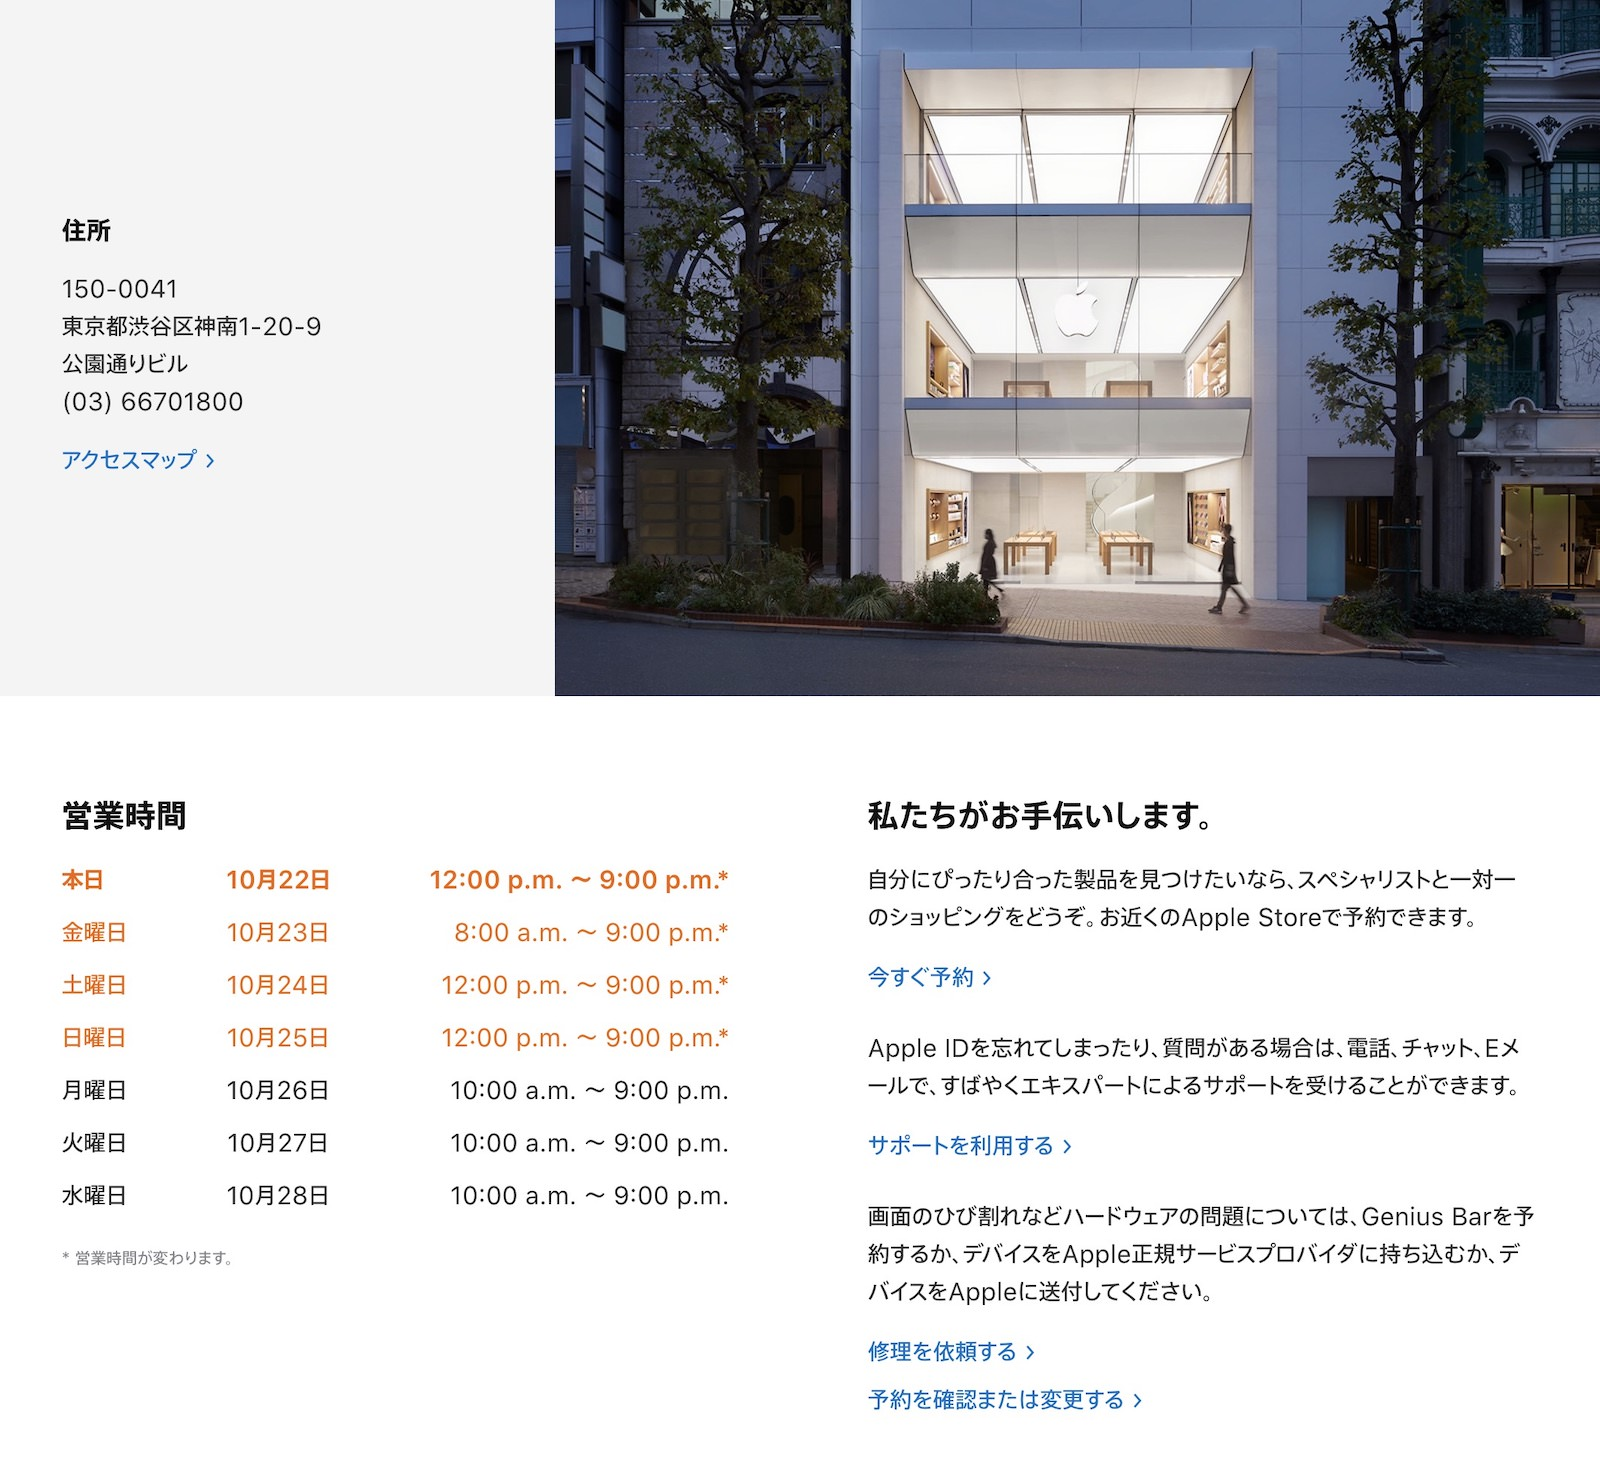 Apple shibuya office hours